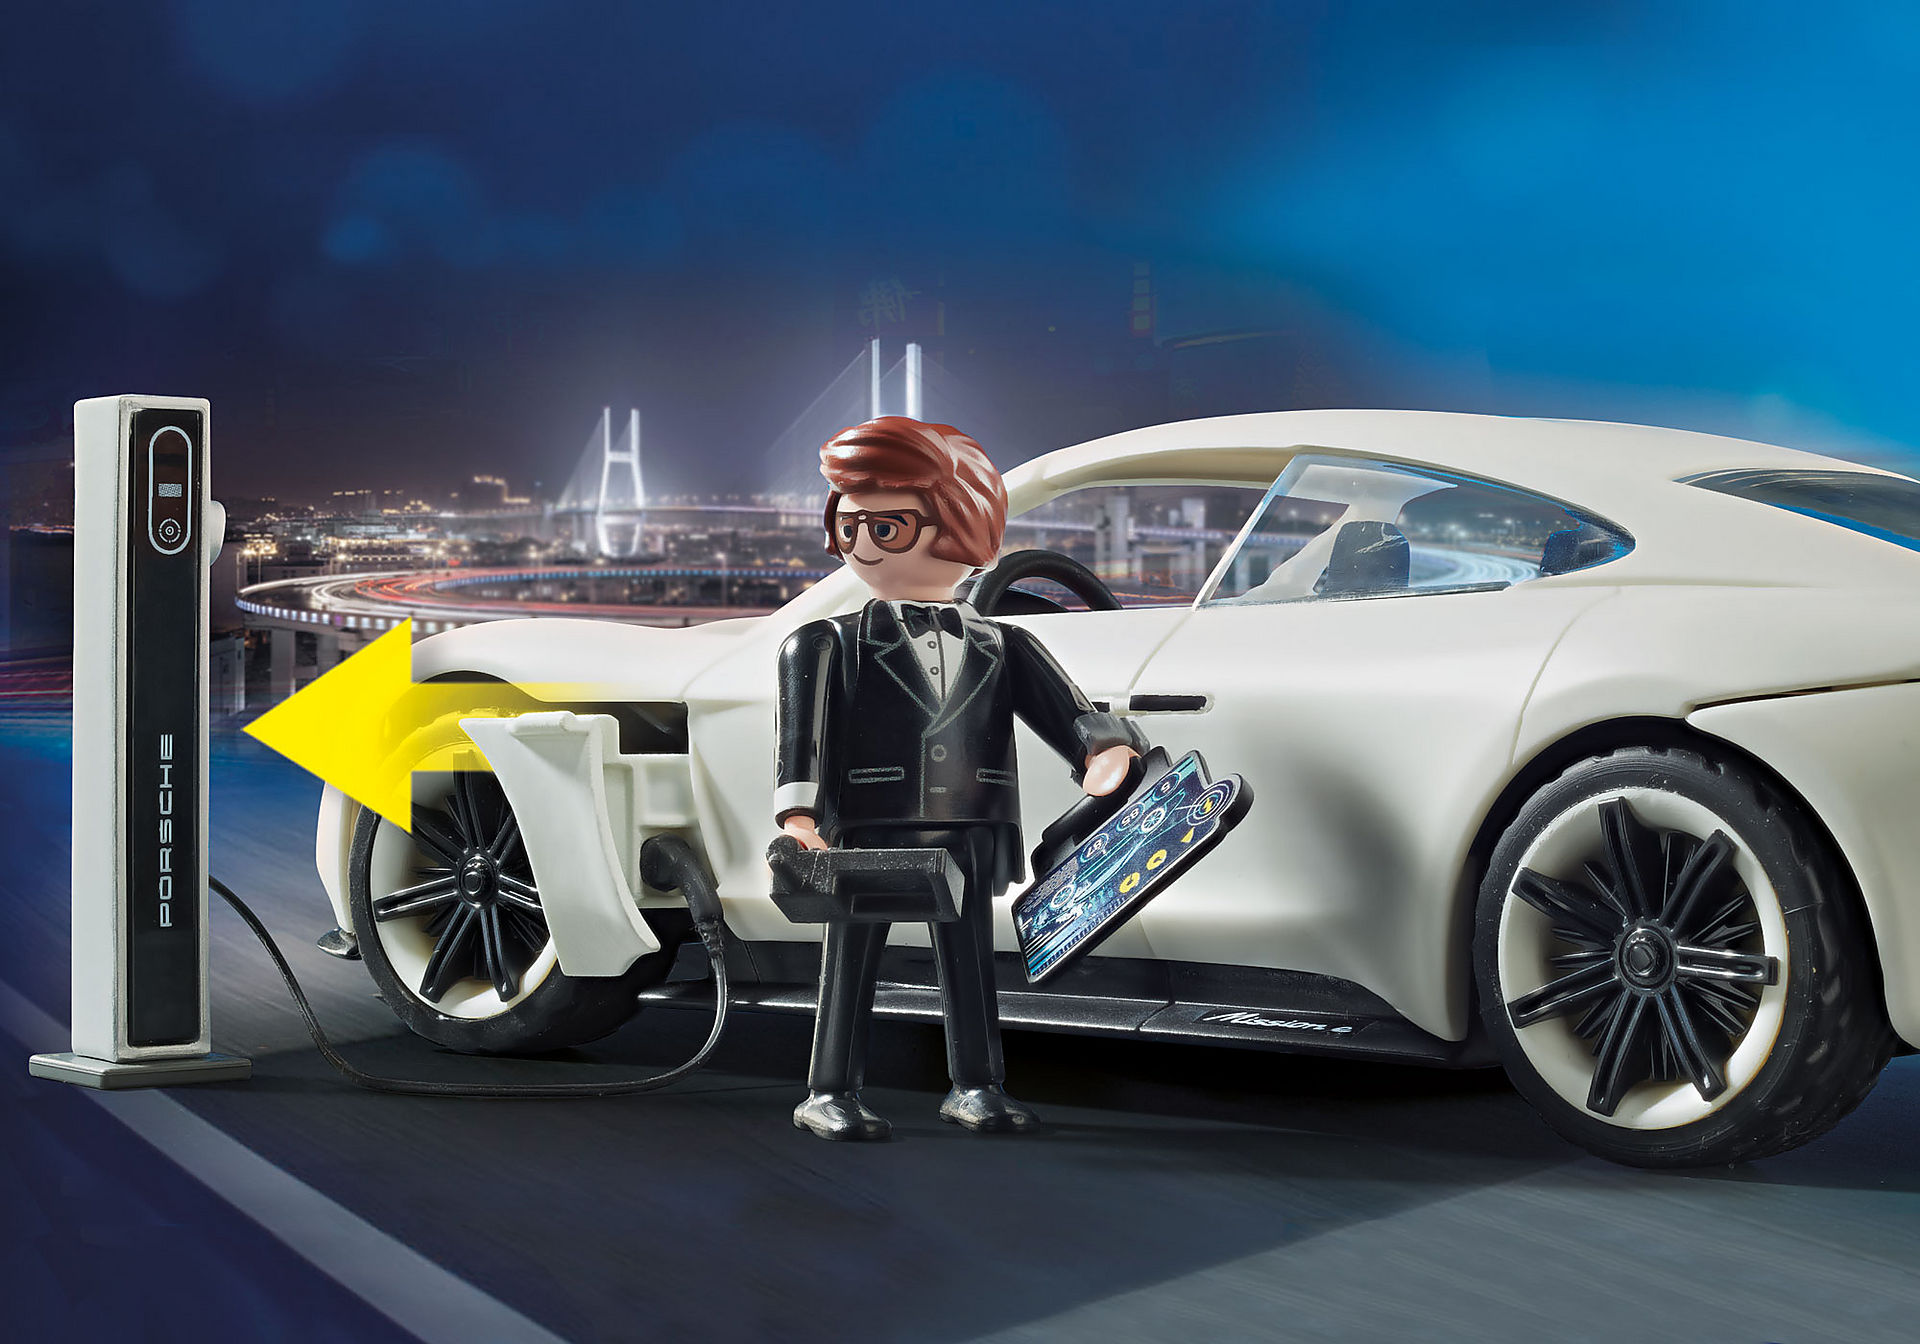 70078 PLAYMOBIL: THE MOVIE Rex Dasher et  Porsche Mission E zoom image4